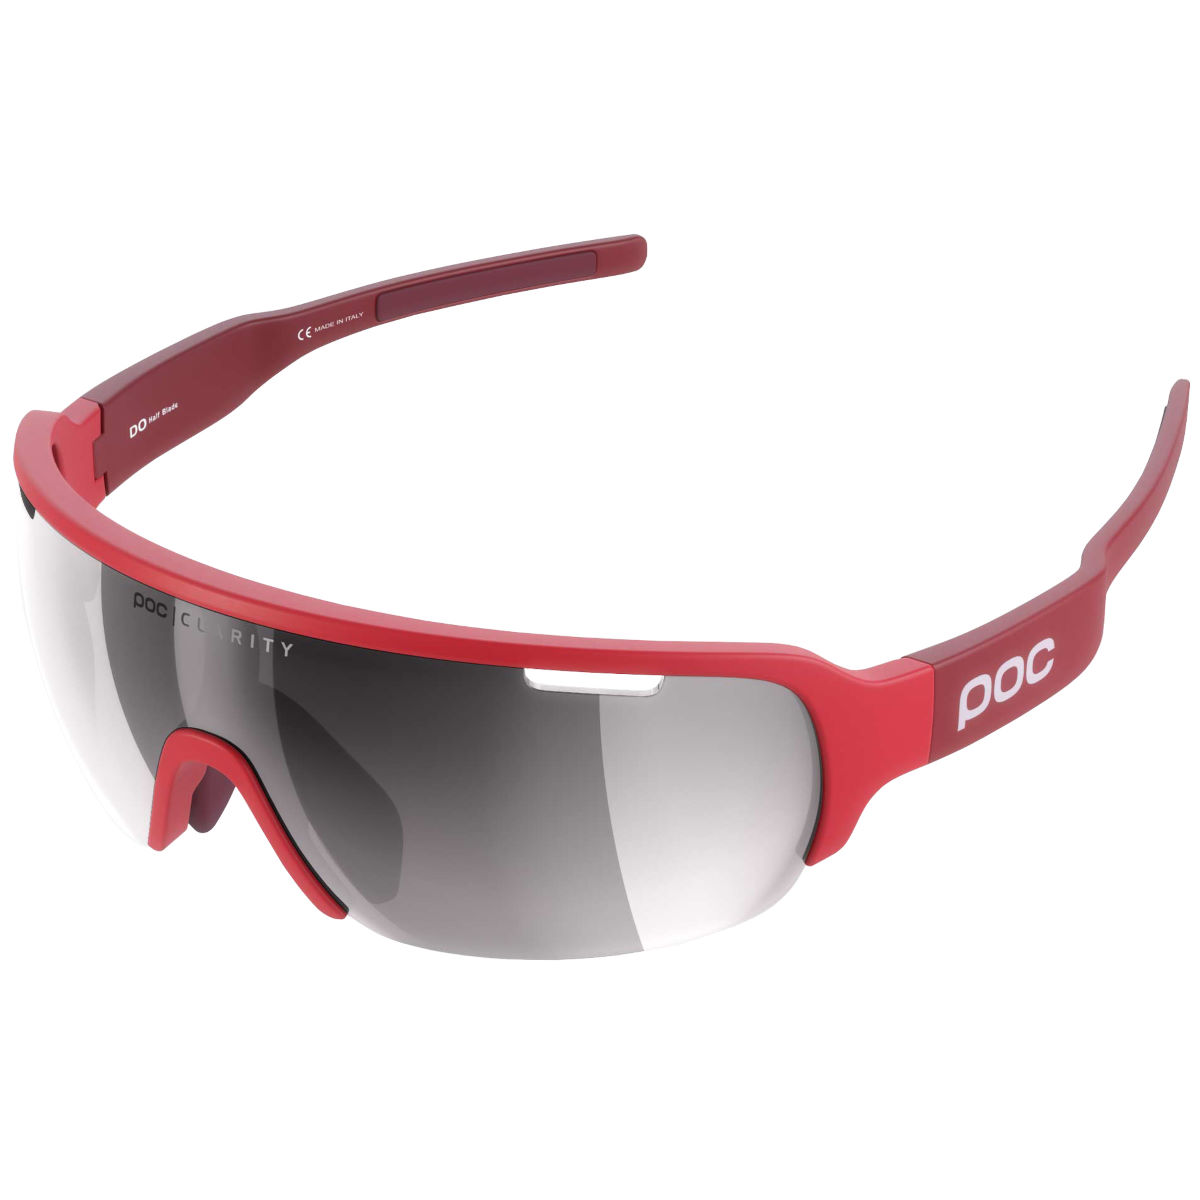 Poc Do Half Blade Clarity Avip Sunglasses - One Size Red/silver